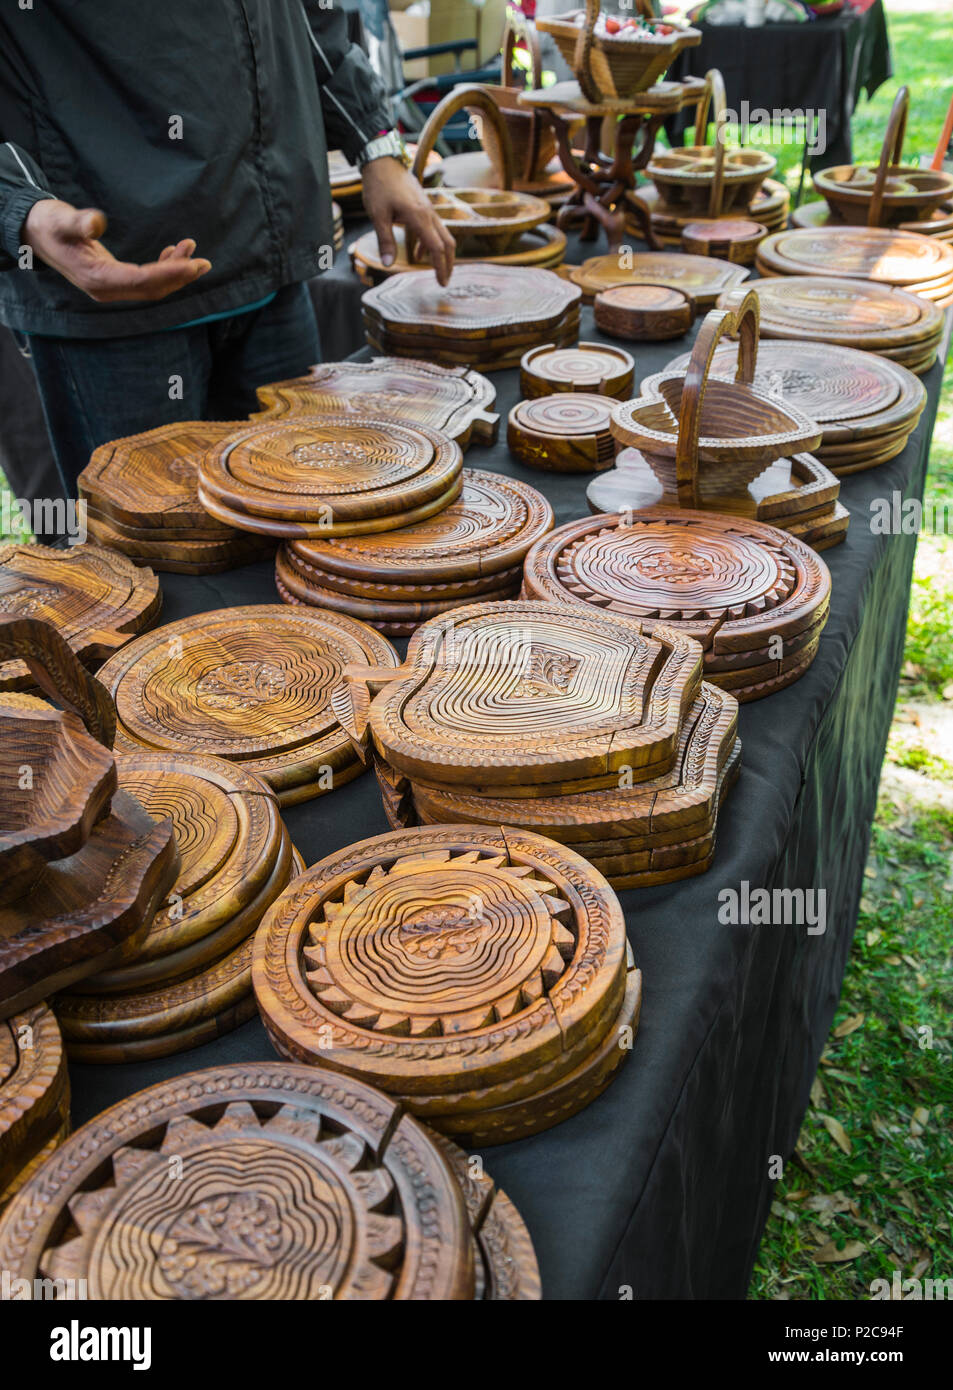 Wood Carvings For Sale Stock Photos & Wood Carvings For Sale Stock ...